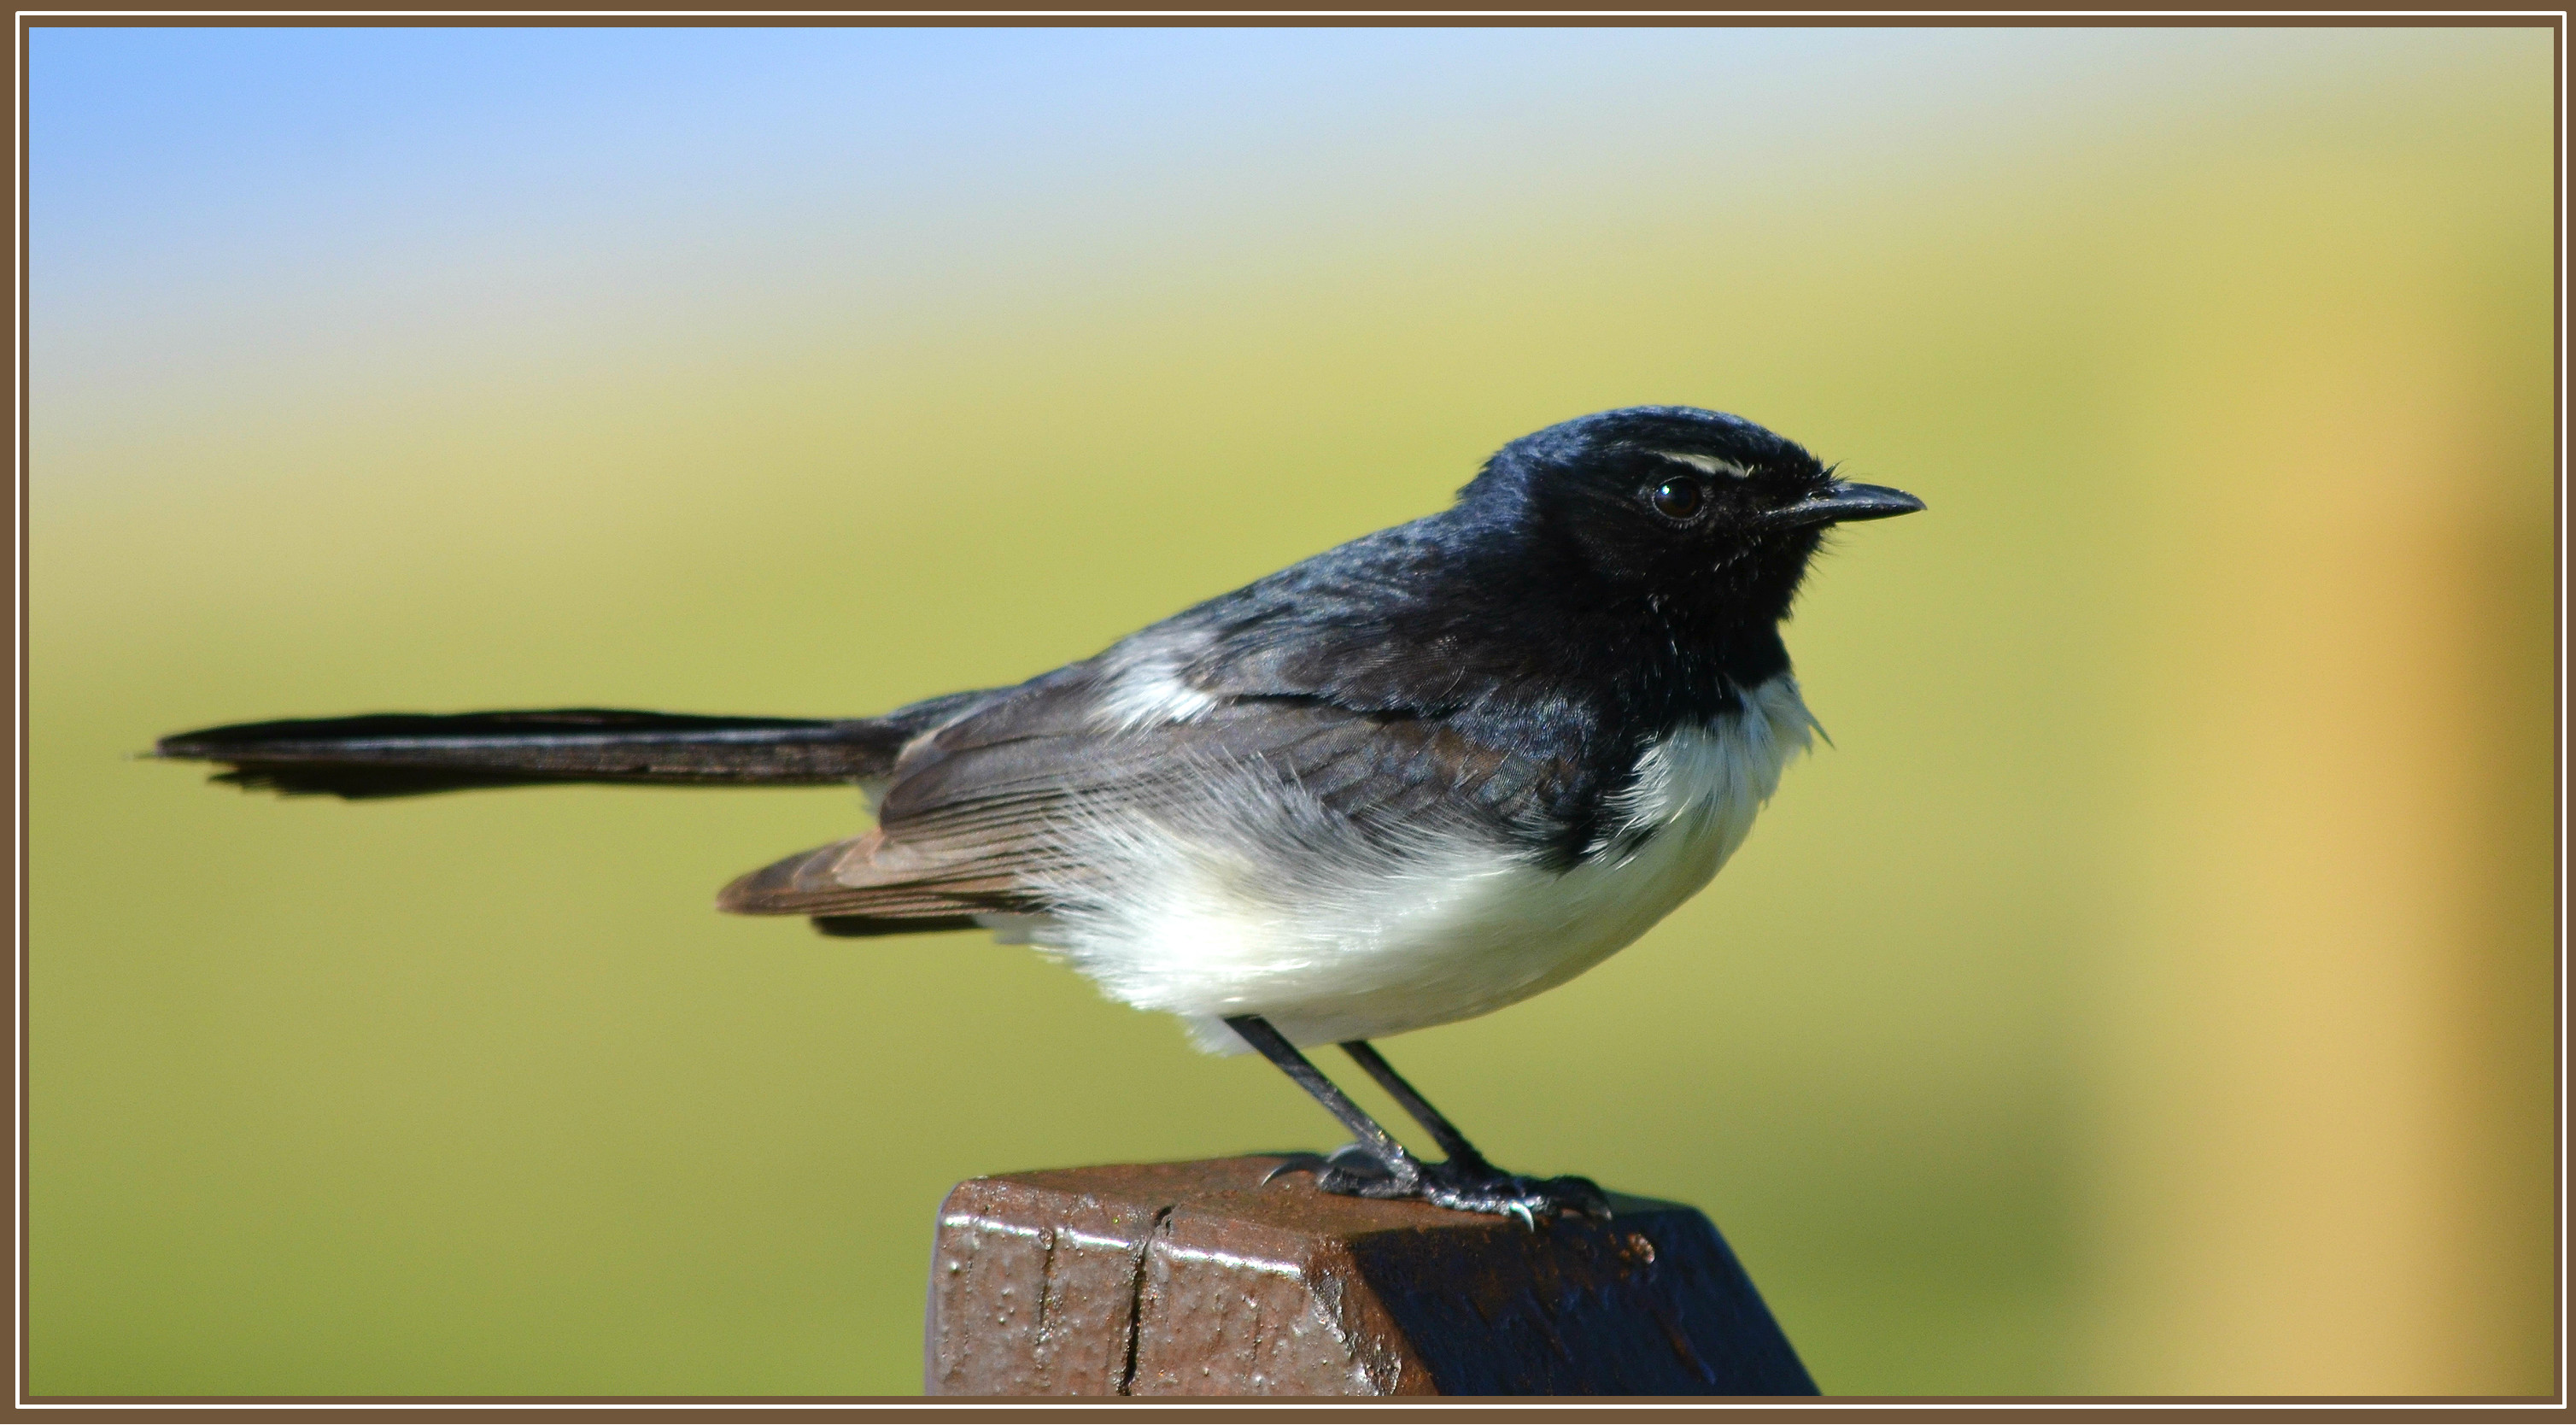 078_willie-wag-tail-b89e977bf2eb521026d933adeff8bbbbc526a315